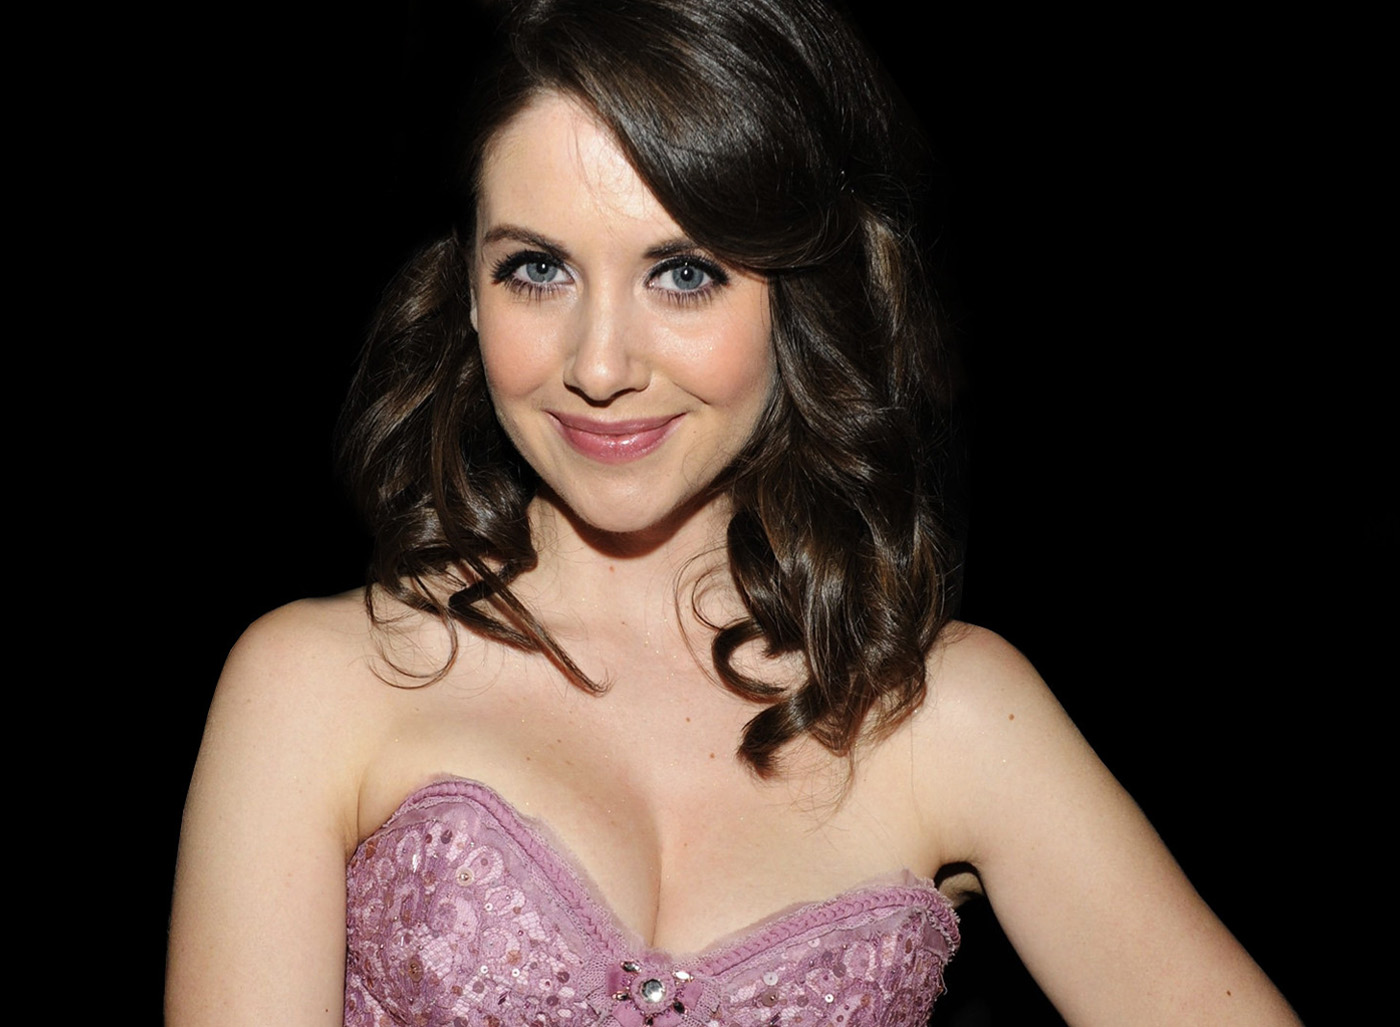 alison brie hot - photo #7